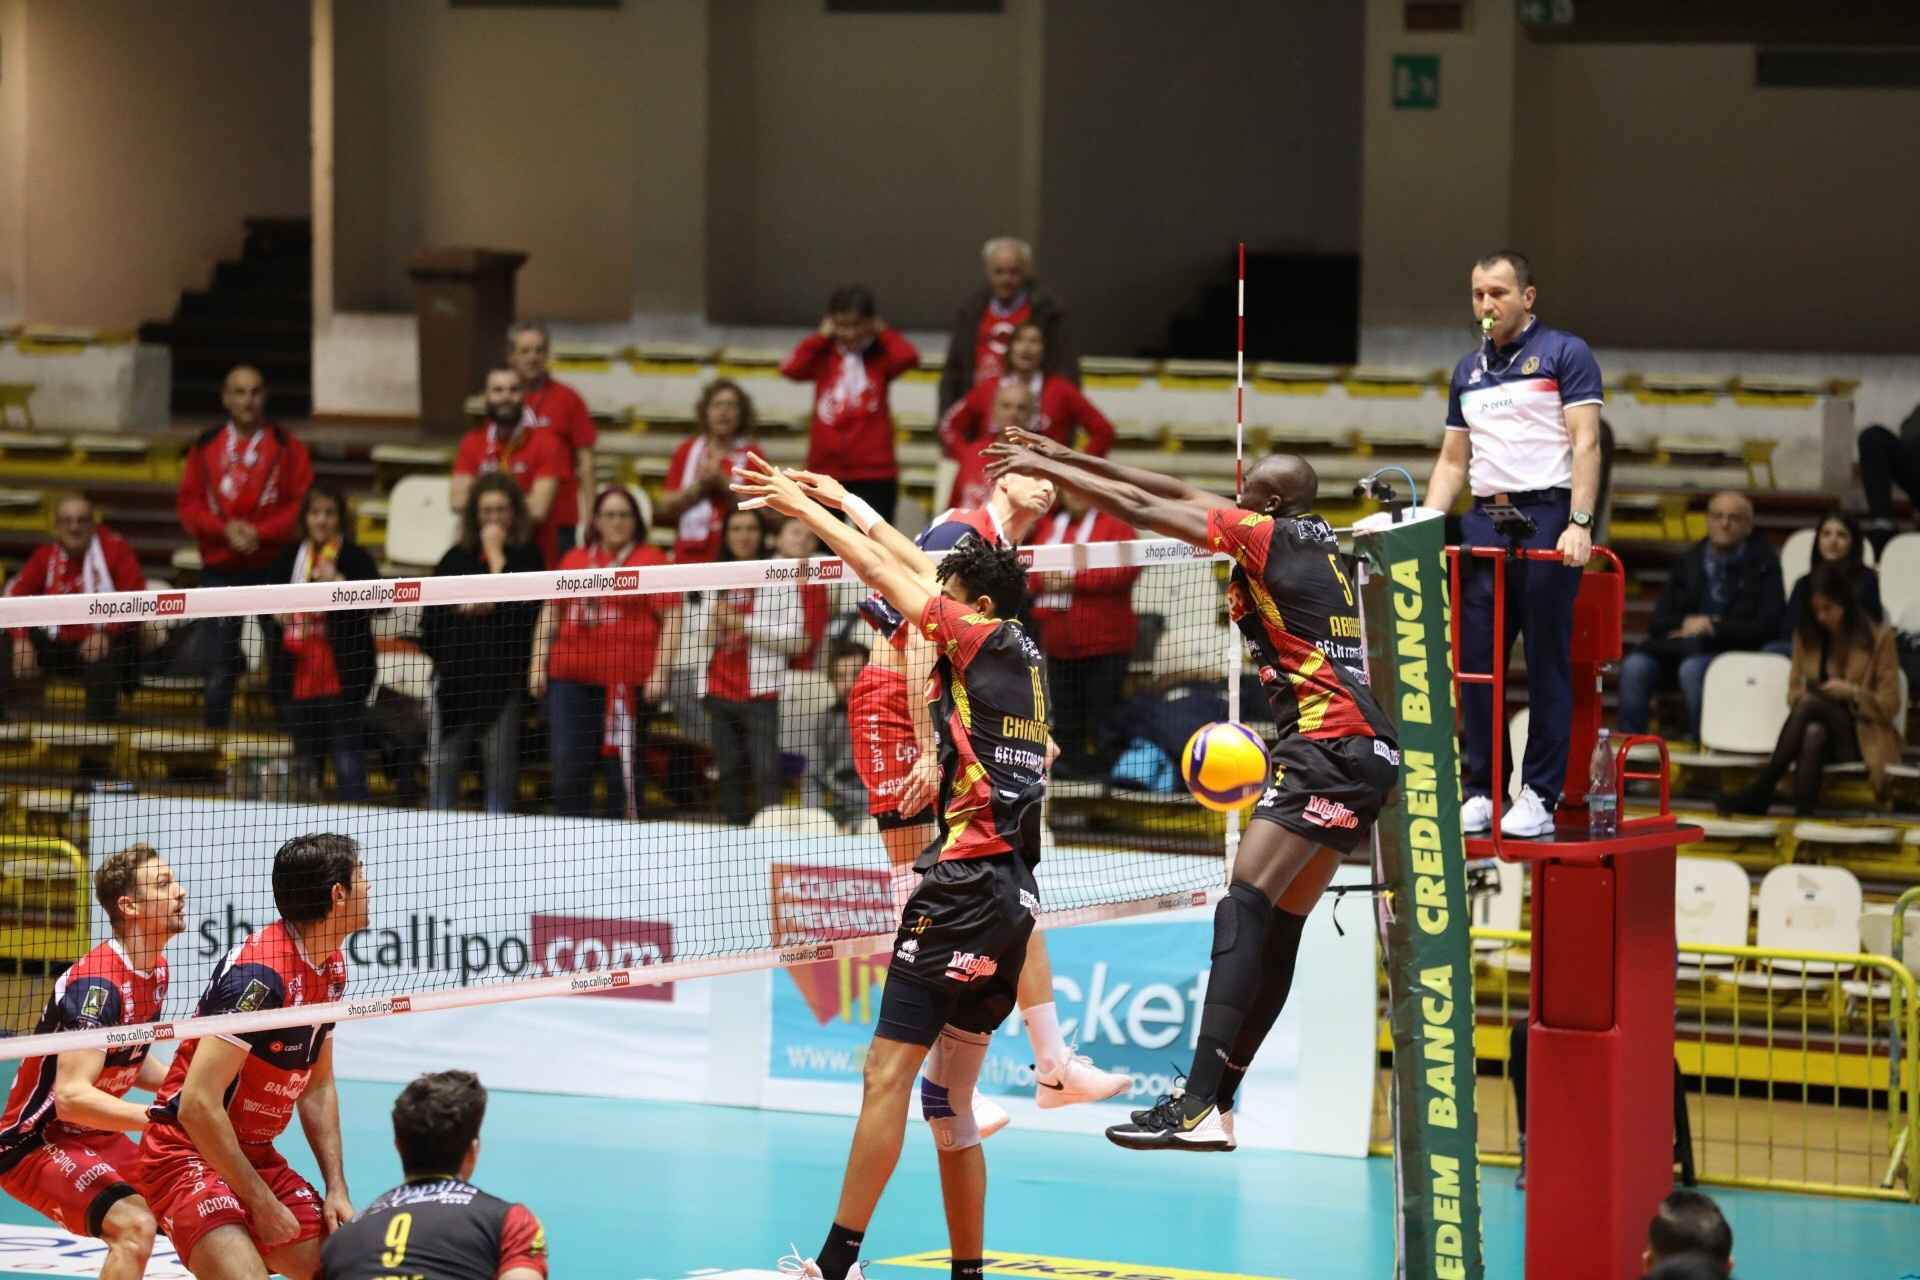 Italy: Piacenza and Monza ok in the advances of Round 17